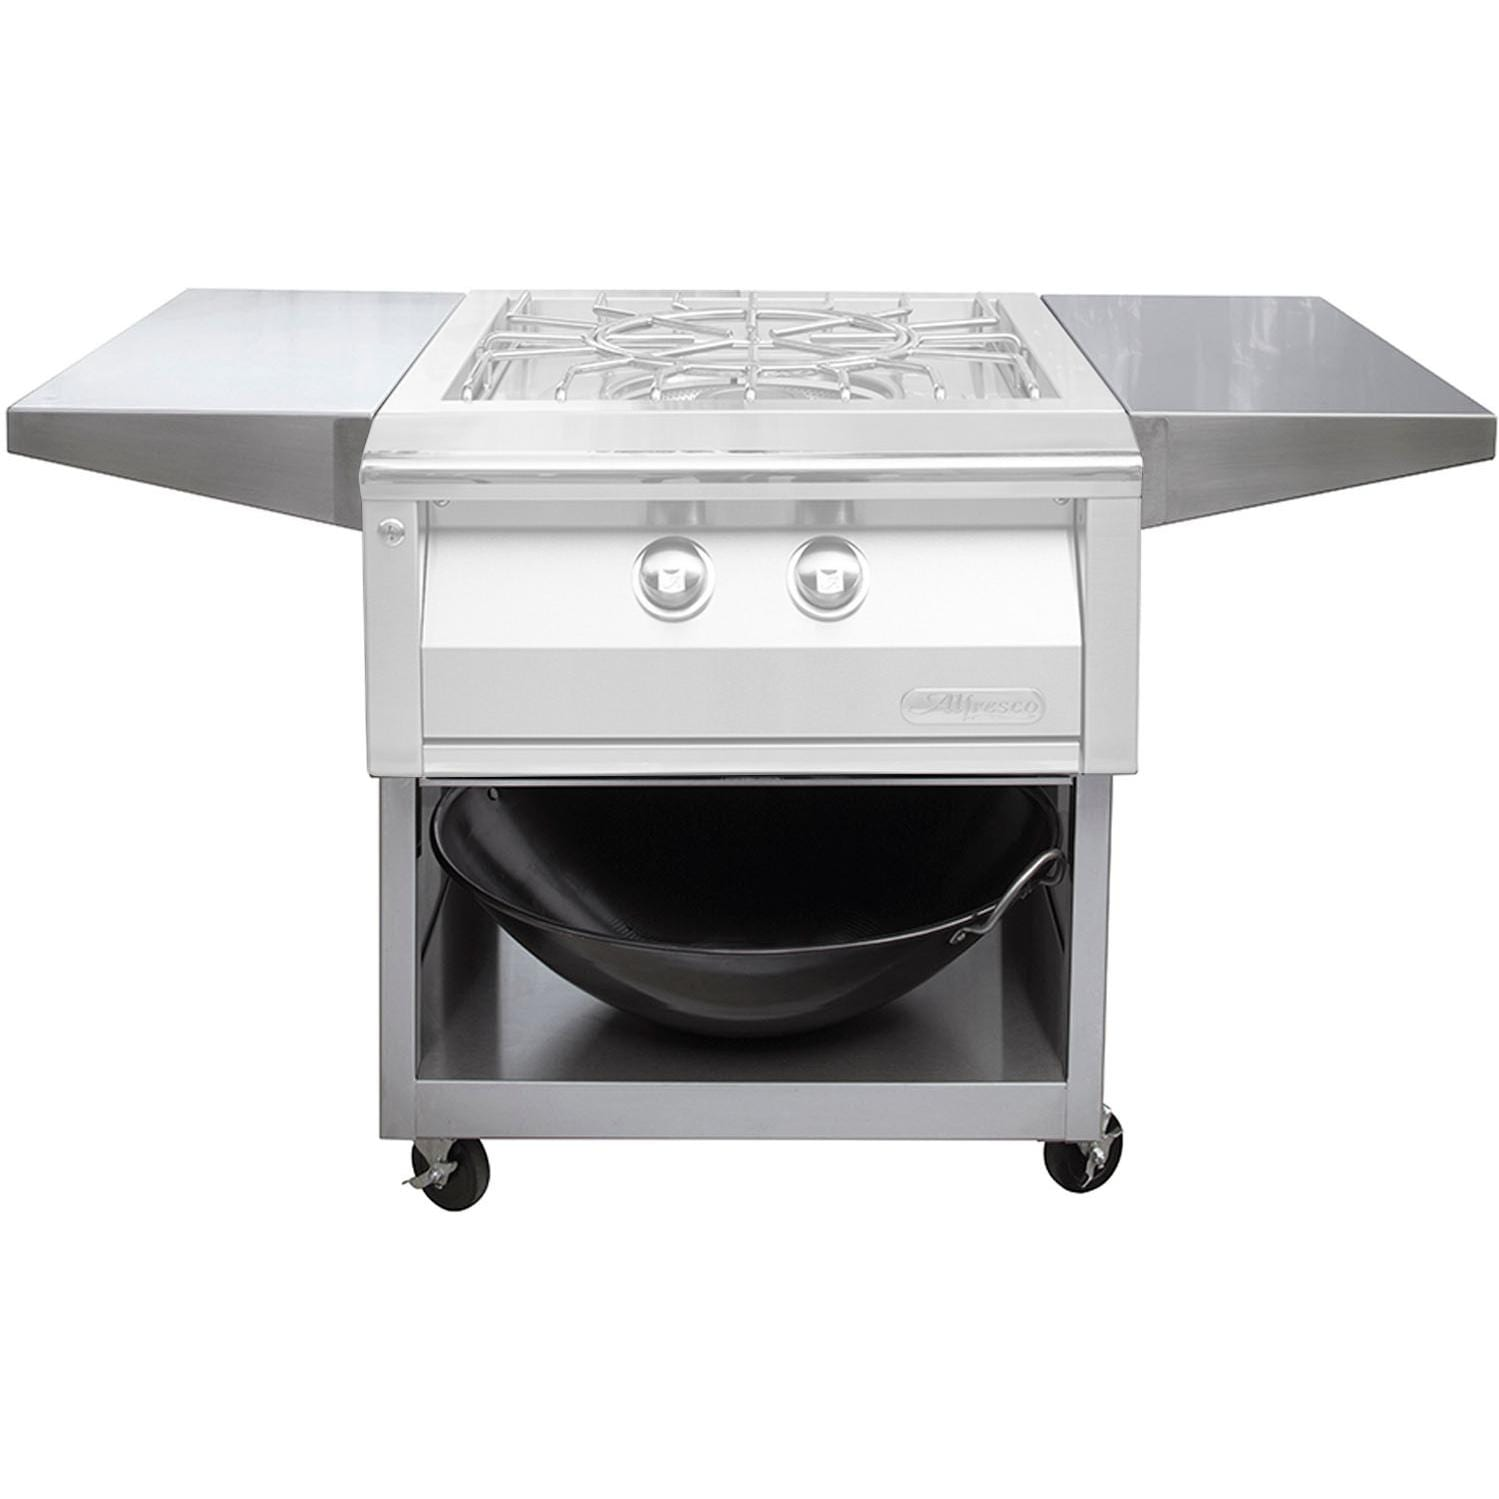 Alfresco 24-Inch Cart For Freestanding Versa Power Cooker - AXEVP-C